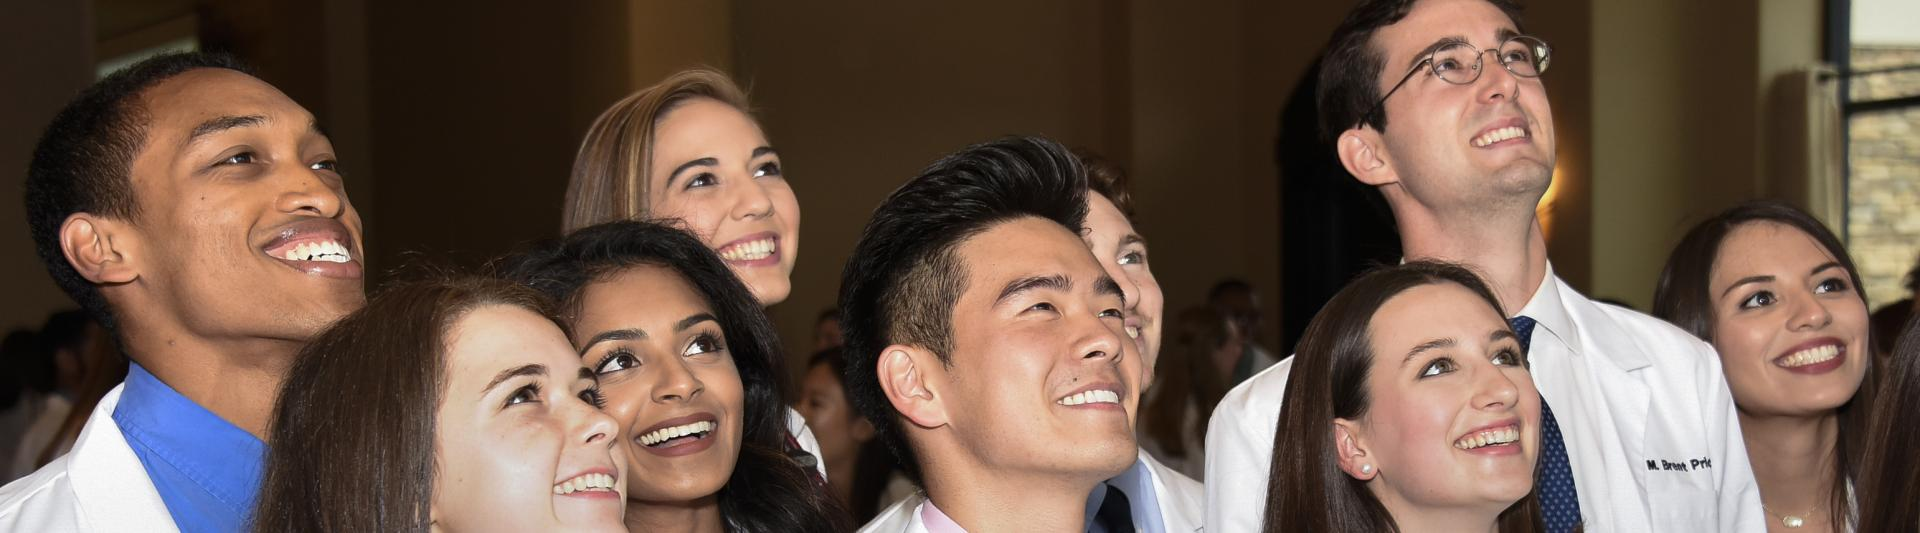 Students celebrating at their White Coat Ceremony